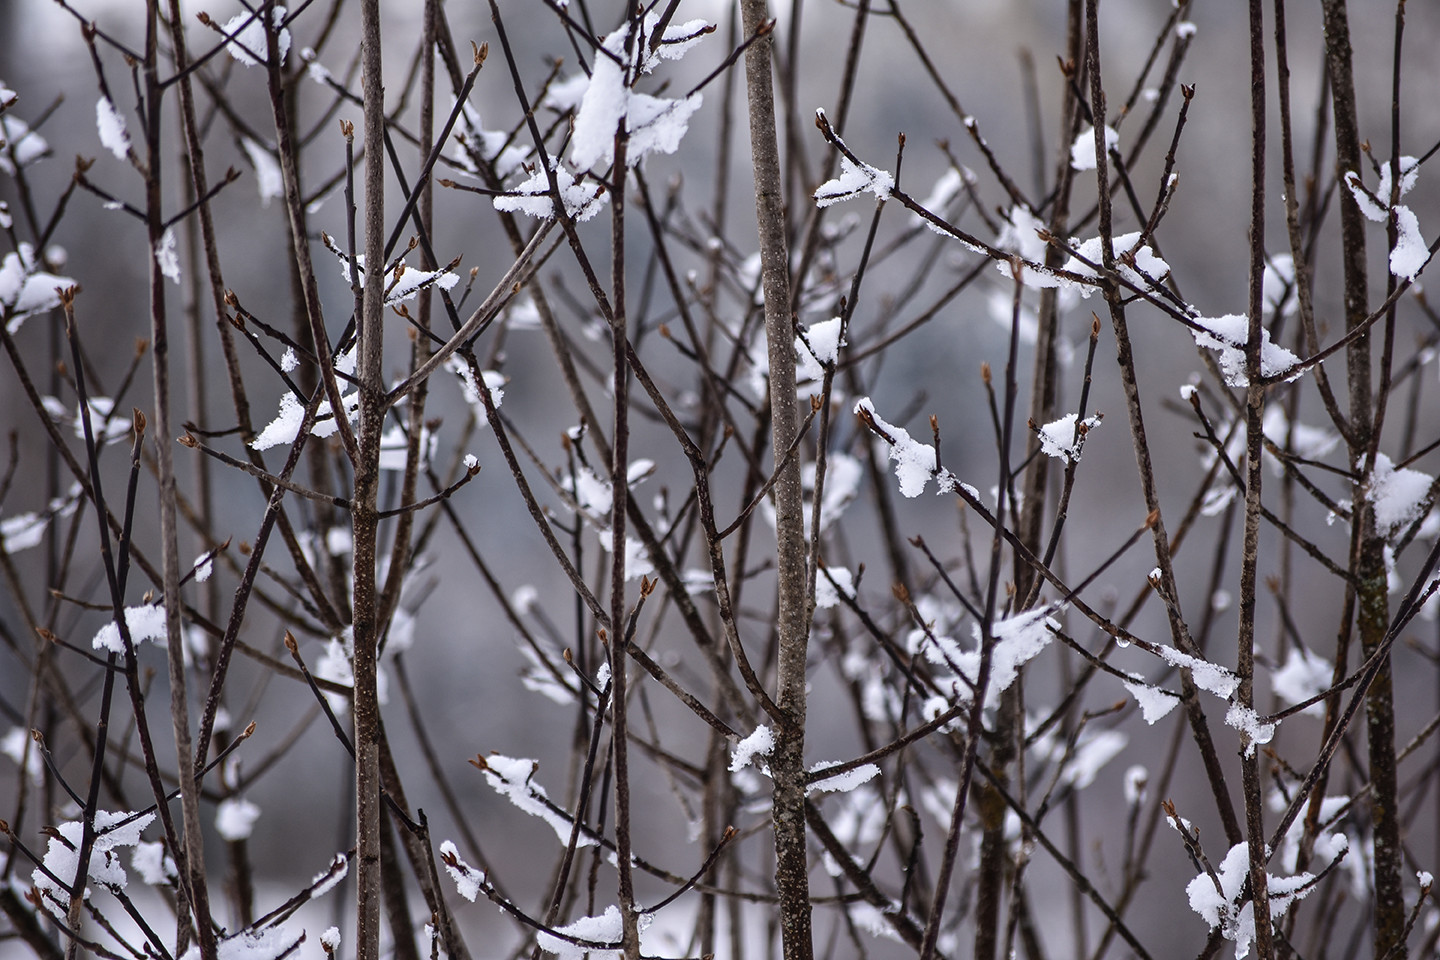 bush in snow branches 3.jpg